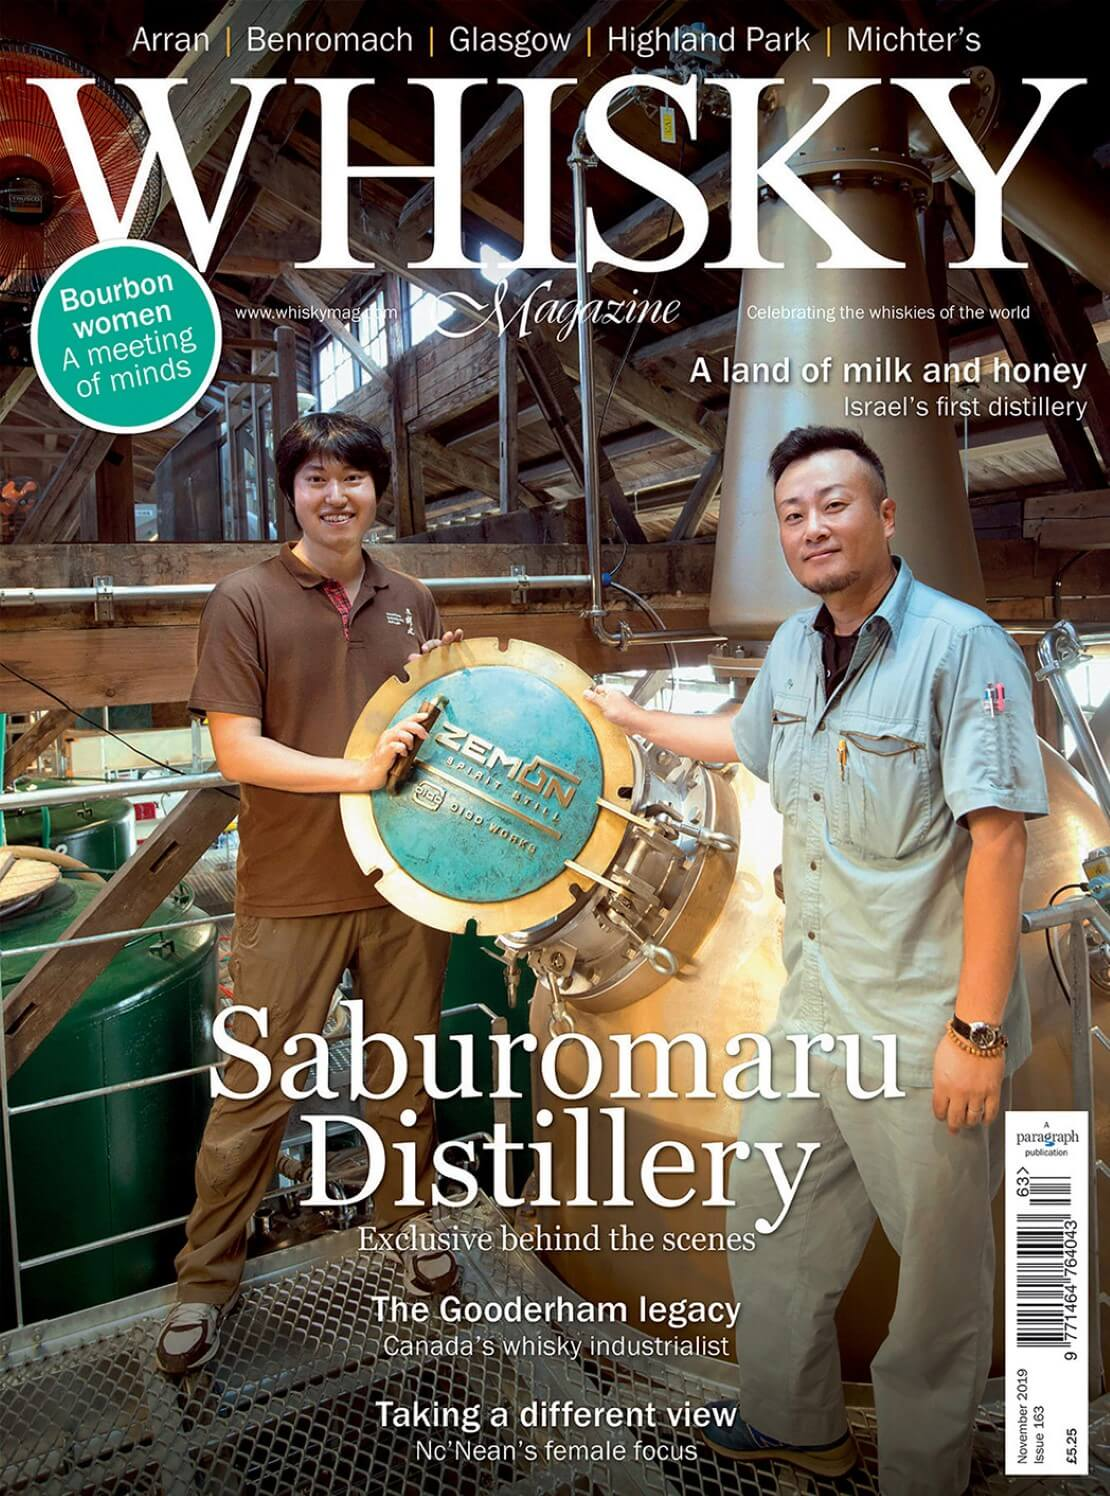 Saburomaru Distillery, Israel's Milk & Honey Distillery, Gooderham - Canada's whisky industrialist, Nc'Nean's female focus